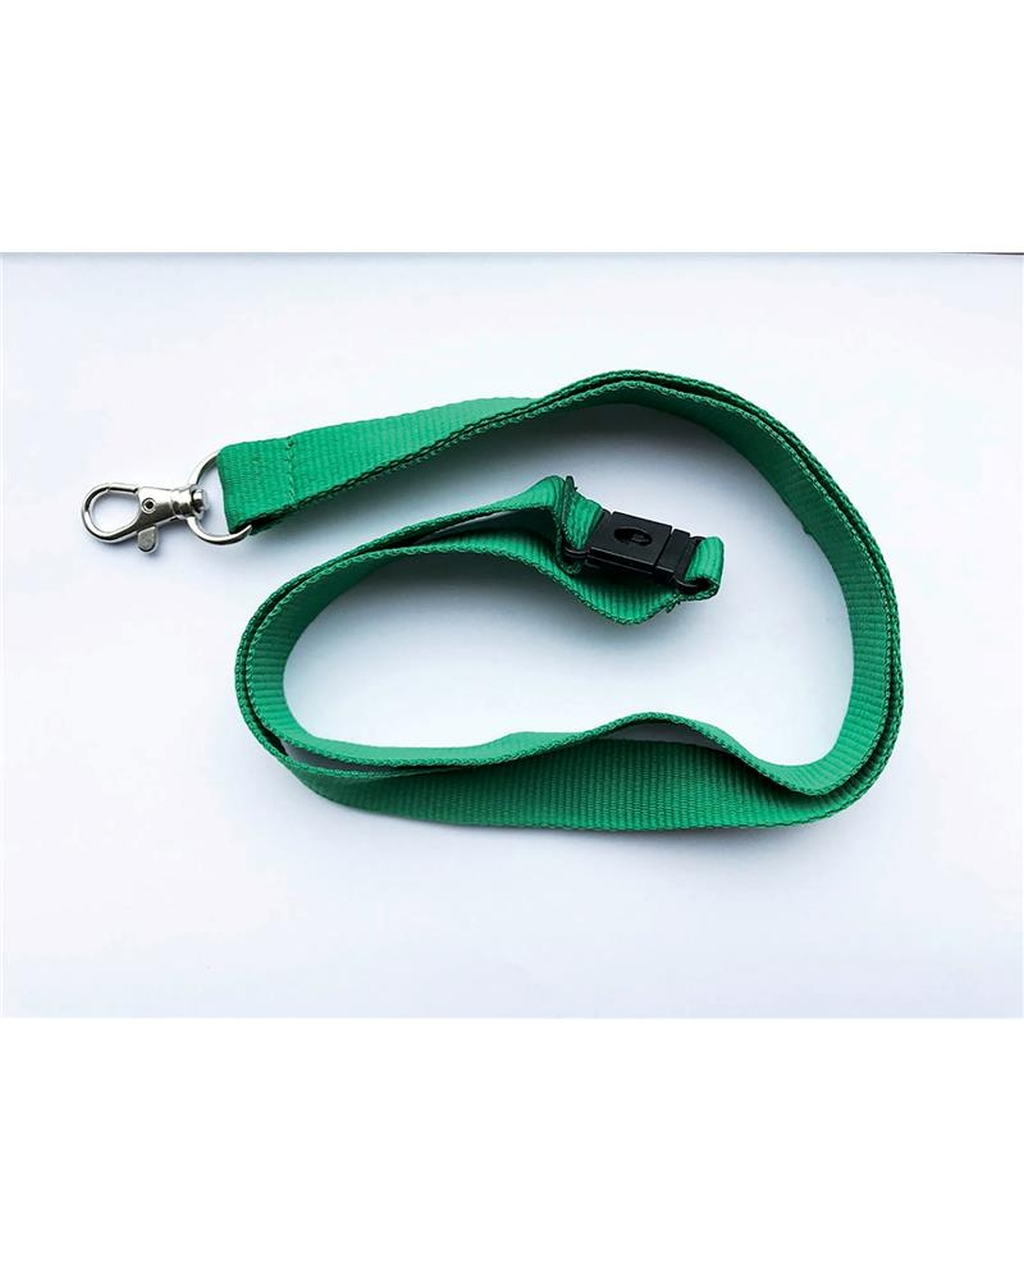 20Mm Lanyards Plain Green Pack Of 100